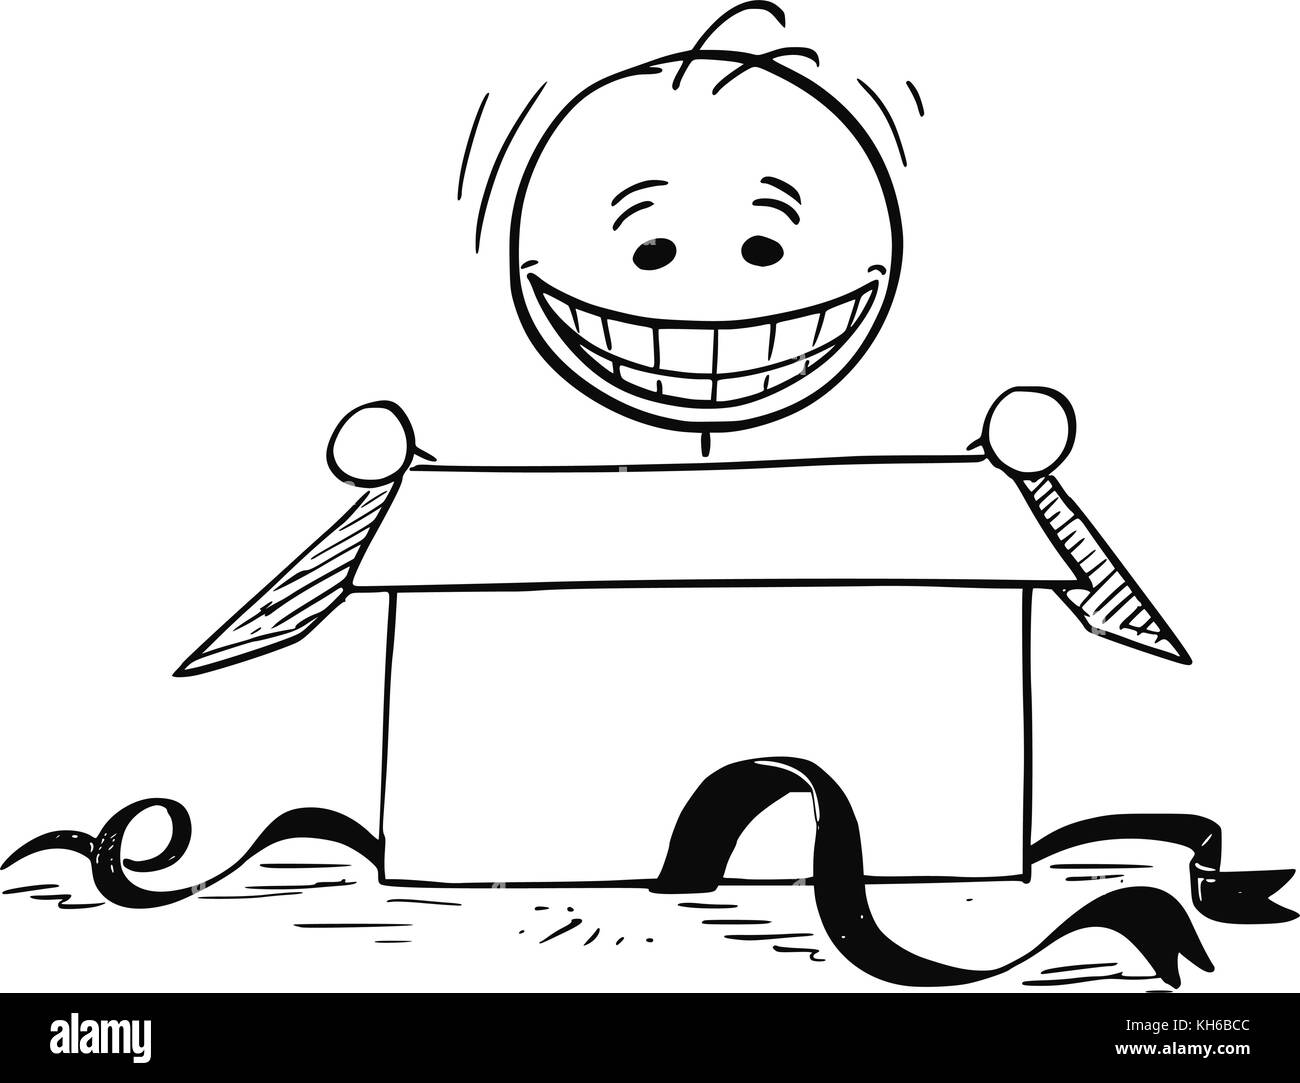 Cartoon Stick Man Drawing Illustration Of Happy Smiling Looking In To Open Birthday Gift Box